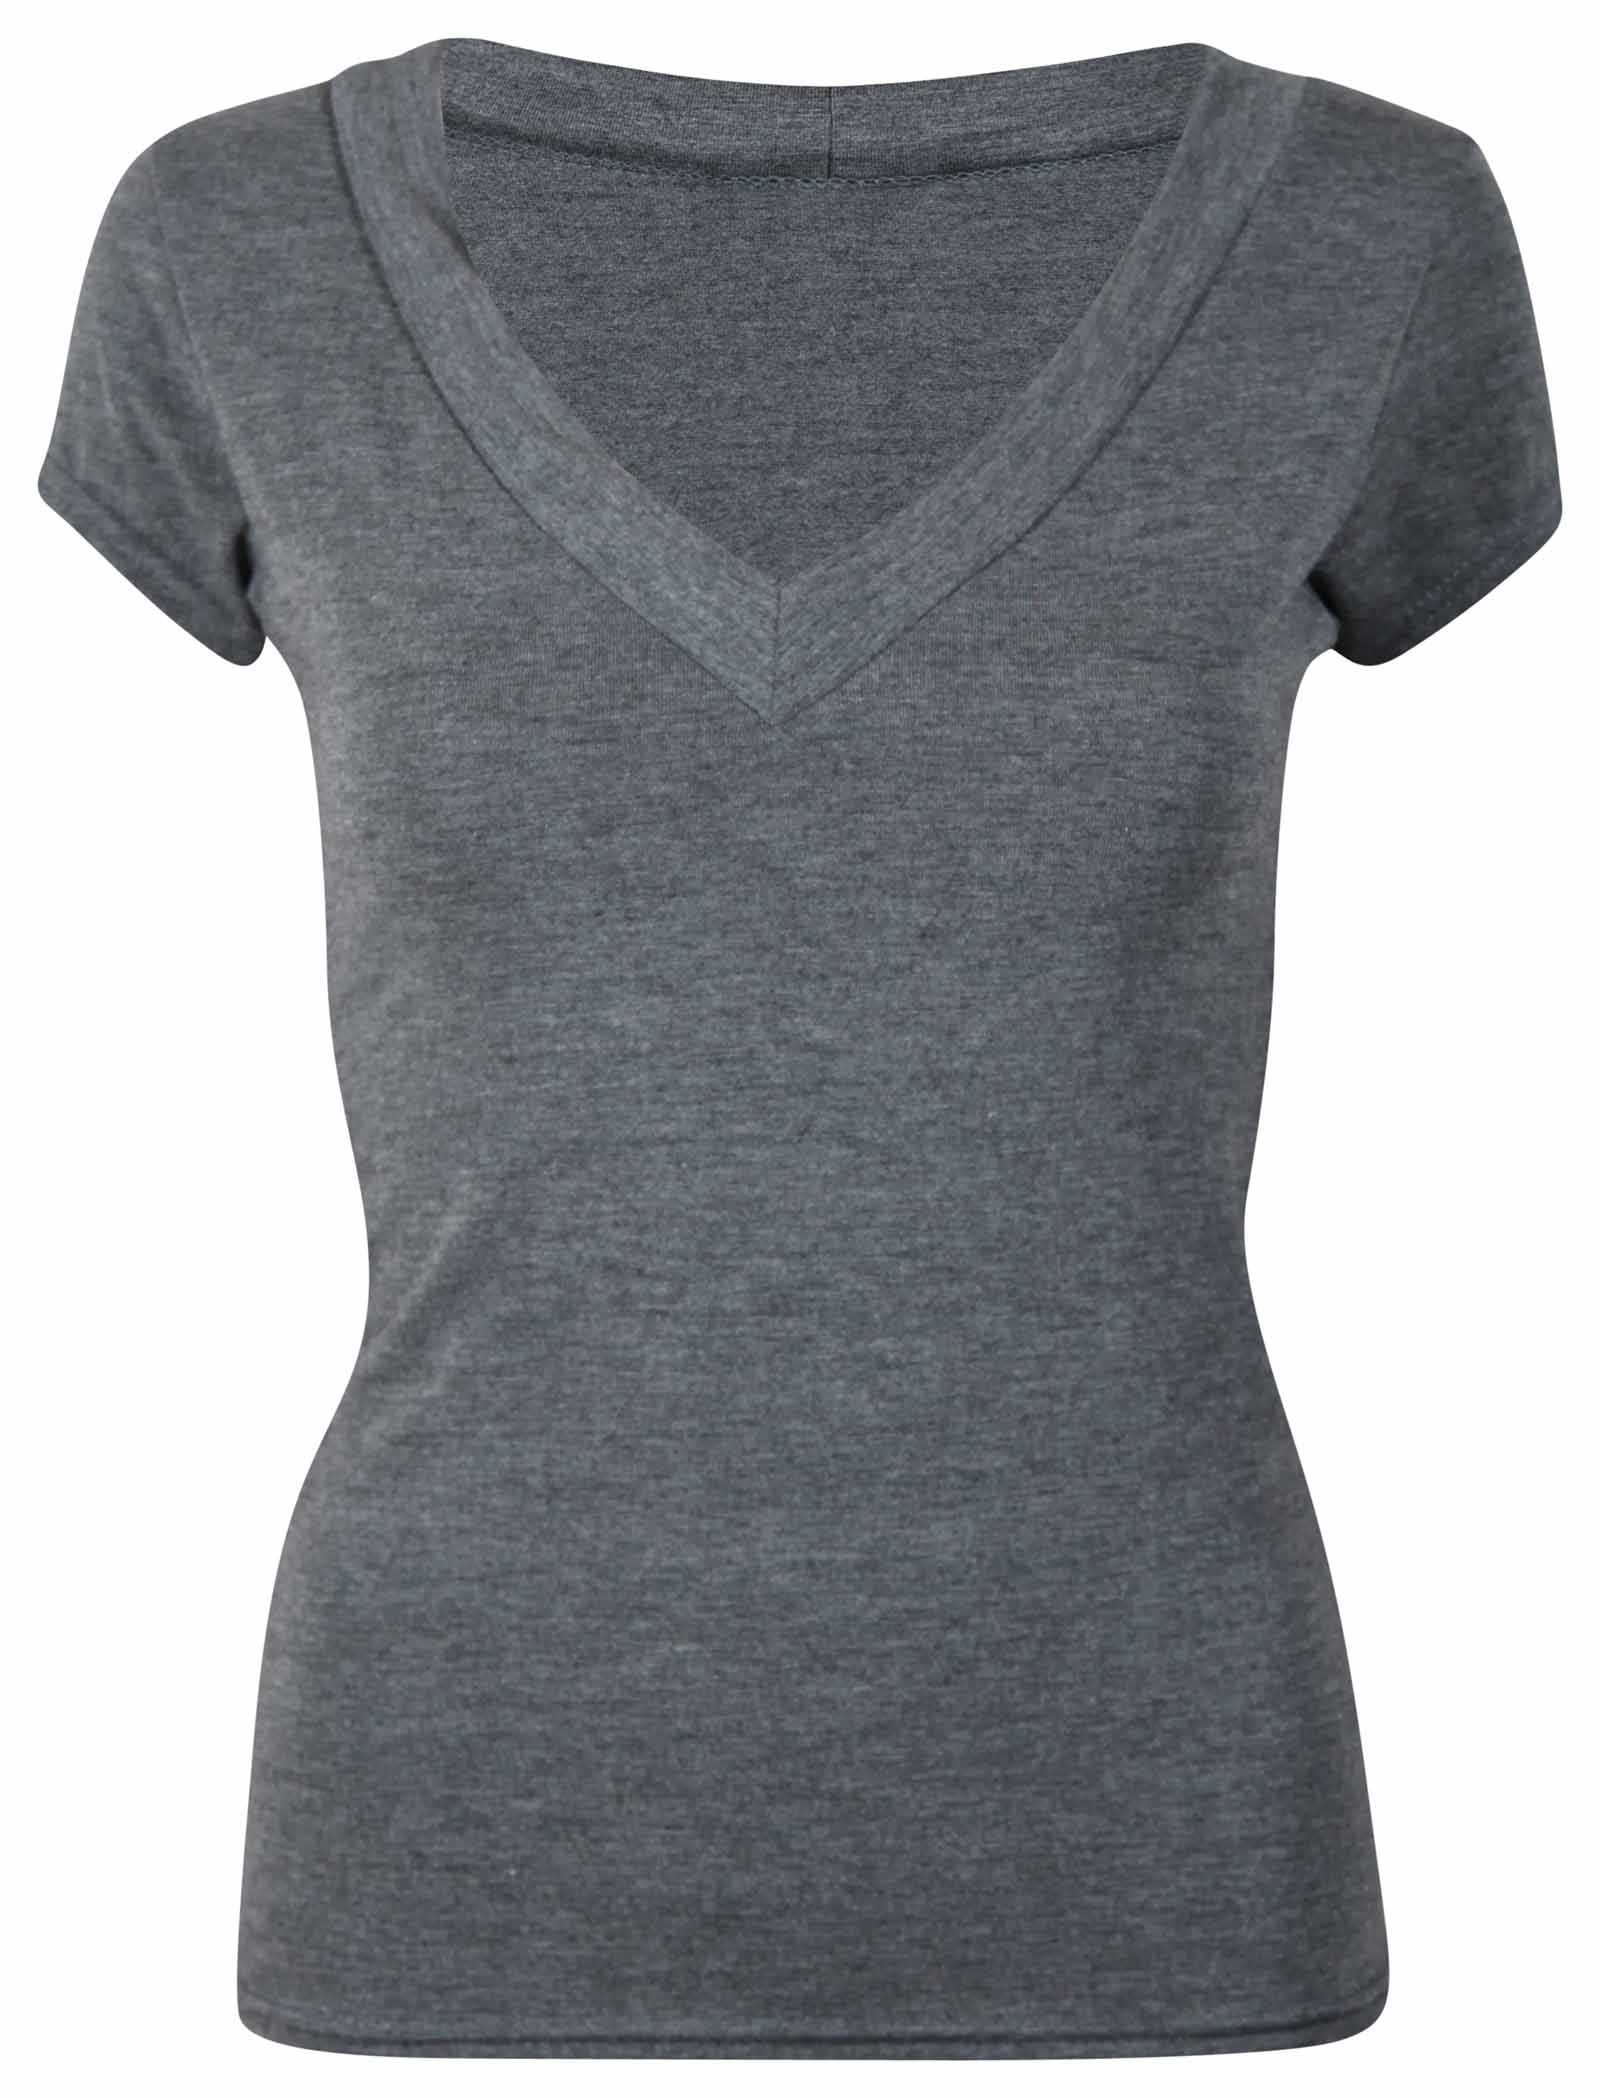 Buy ladies plain t shirts on yoins, a lot of plain t shirts online for your choice, get some cute plain t shirts for yourself, these stylish plain t shirts are all affordable.